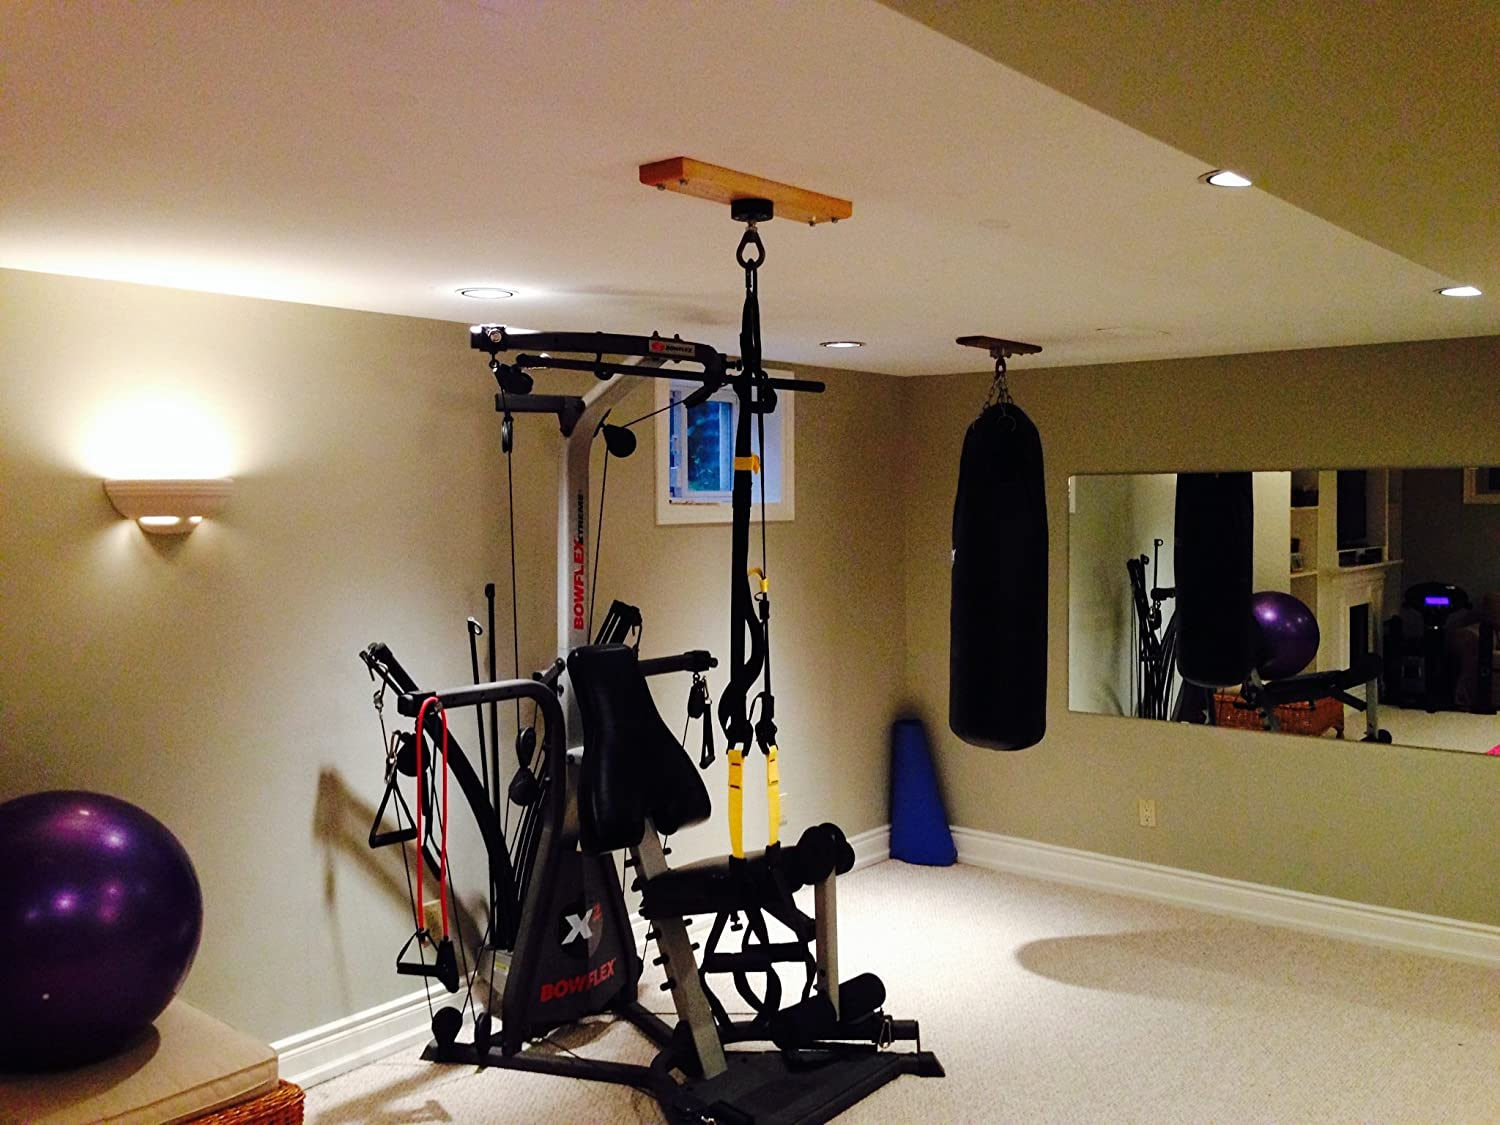 Build the ultimate garage gym for about per day